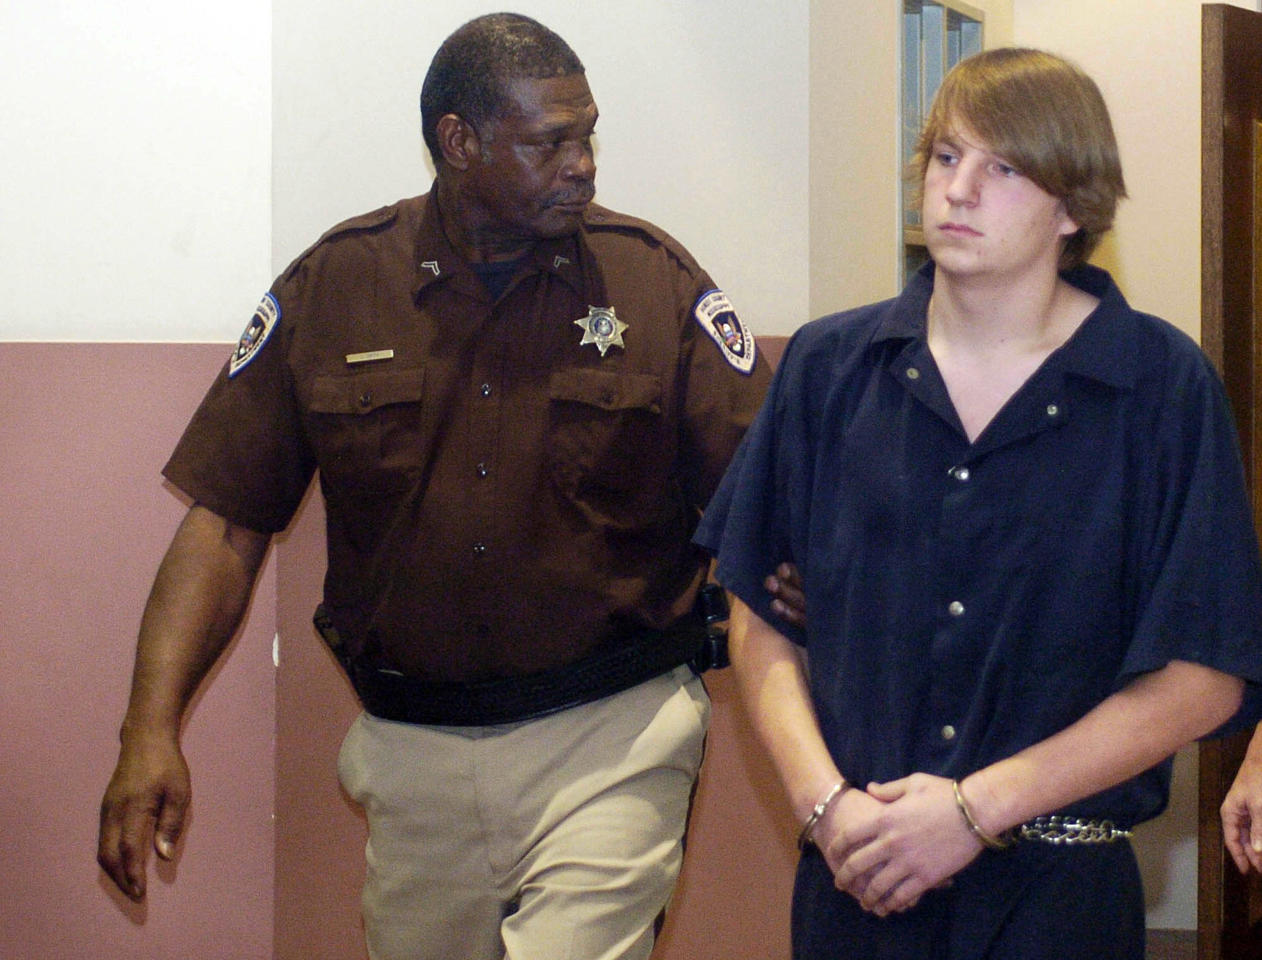 In this July 18, 2011 photograph, Hinds County Sheriff's deputy Lawyer Smith, left, escorts murder suspect John Aaron Rice, of Brandon, to a preliminary hearing at the Hinds County Courthouse in Jackson, Miss. The murder charge against Rice was reduced to simple assault stemming from his involvement in a June hit-and-run death of James Craig Anderson, 49, of Jackson. Deryl Dedmon, also of Brandon, was charged in the death of Anderson. (AP Photo/The Clarion-Ledger, Greg Jenson) NO SALES